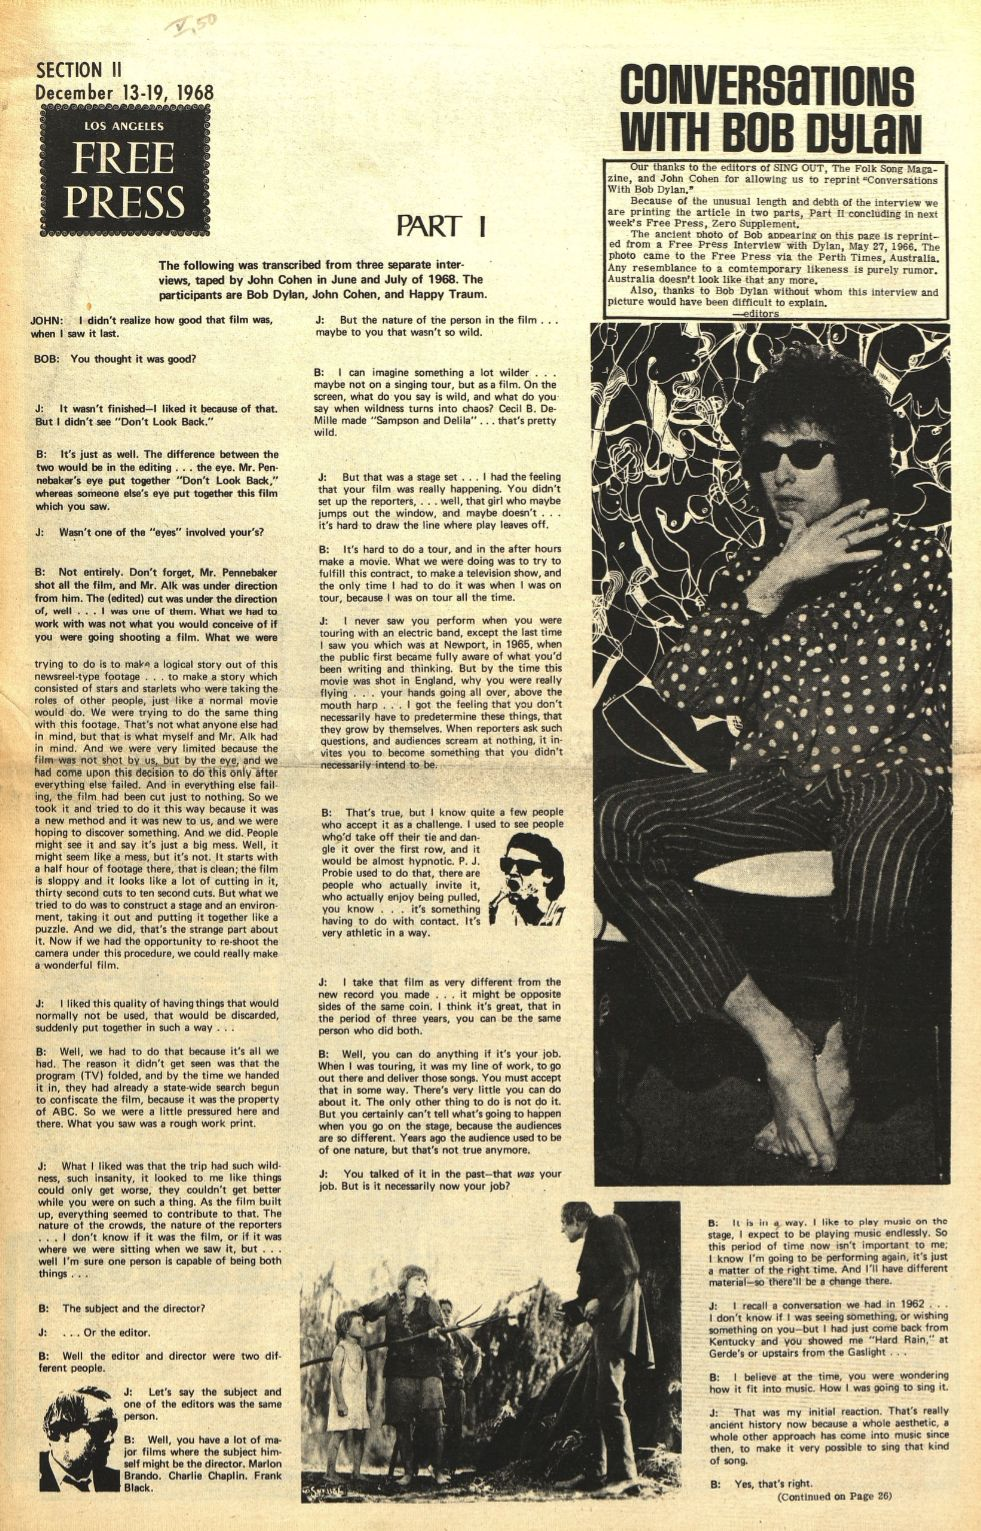 los angeles free press 13 Dec 1968 magazine Bob Dylan cover story